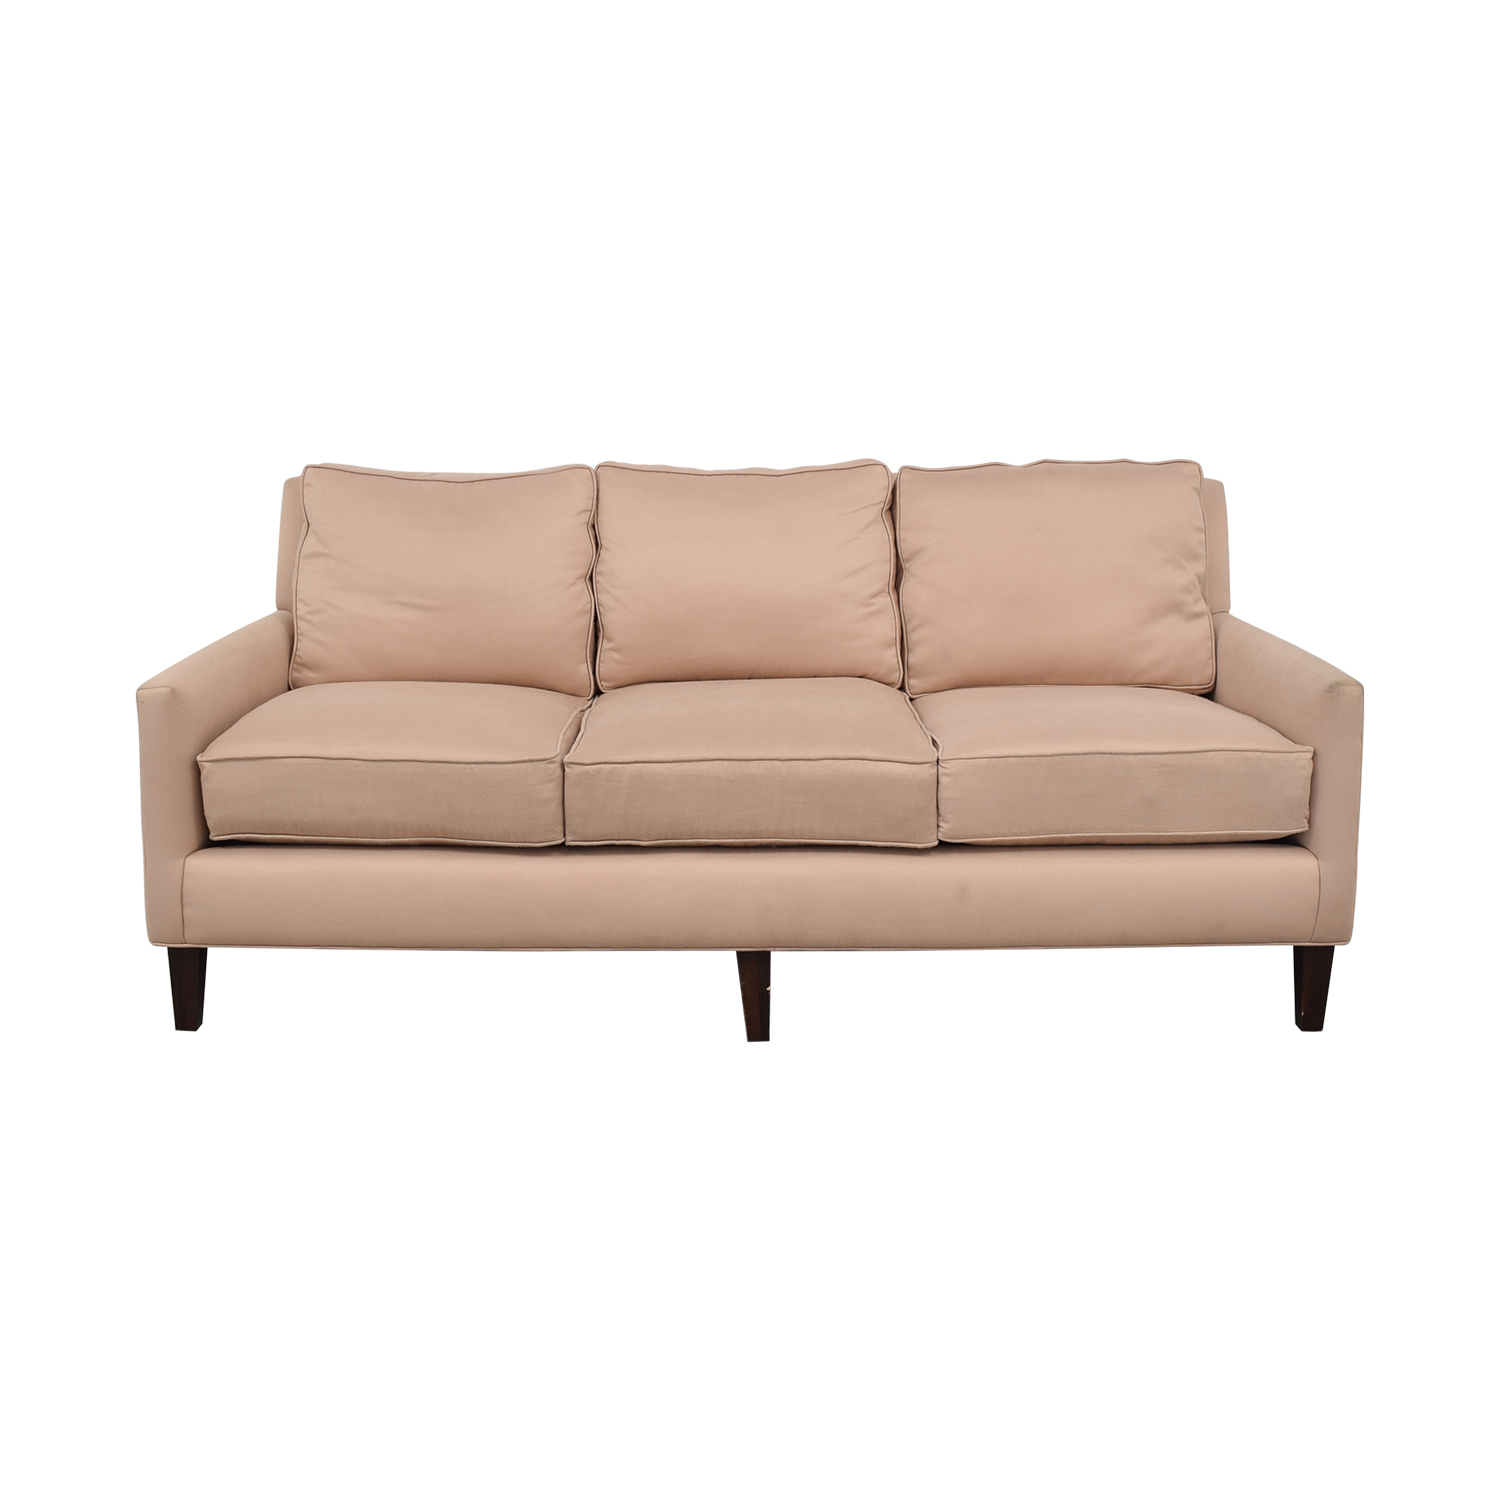 buy Thomasville Highlife Three-Seat Sofa Thomasville Classic Sofas